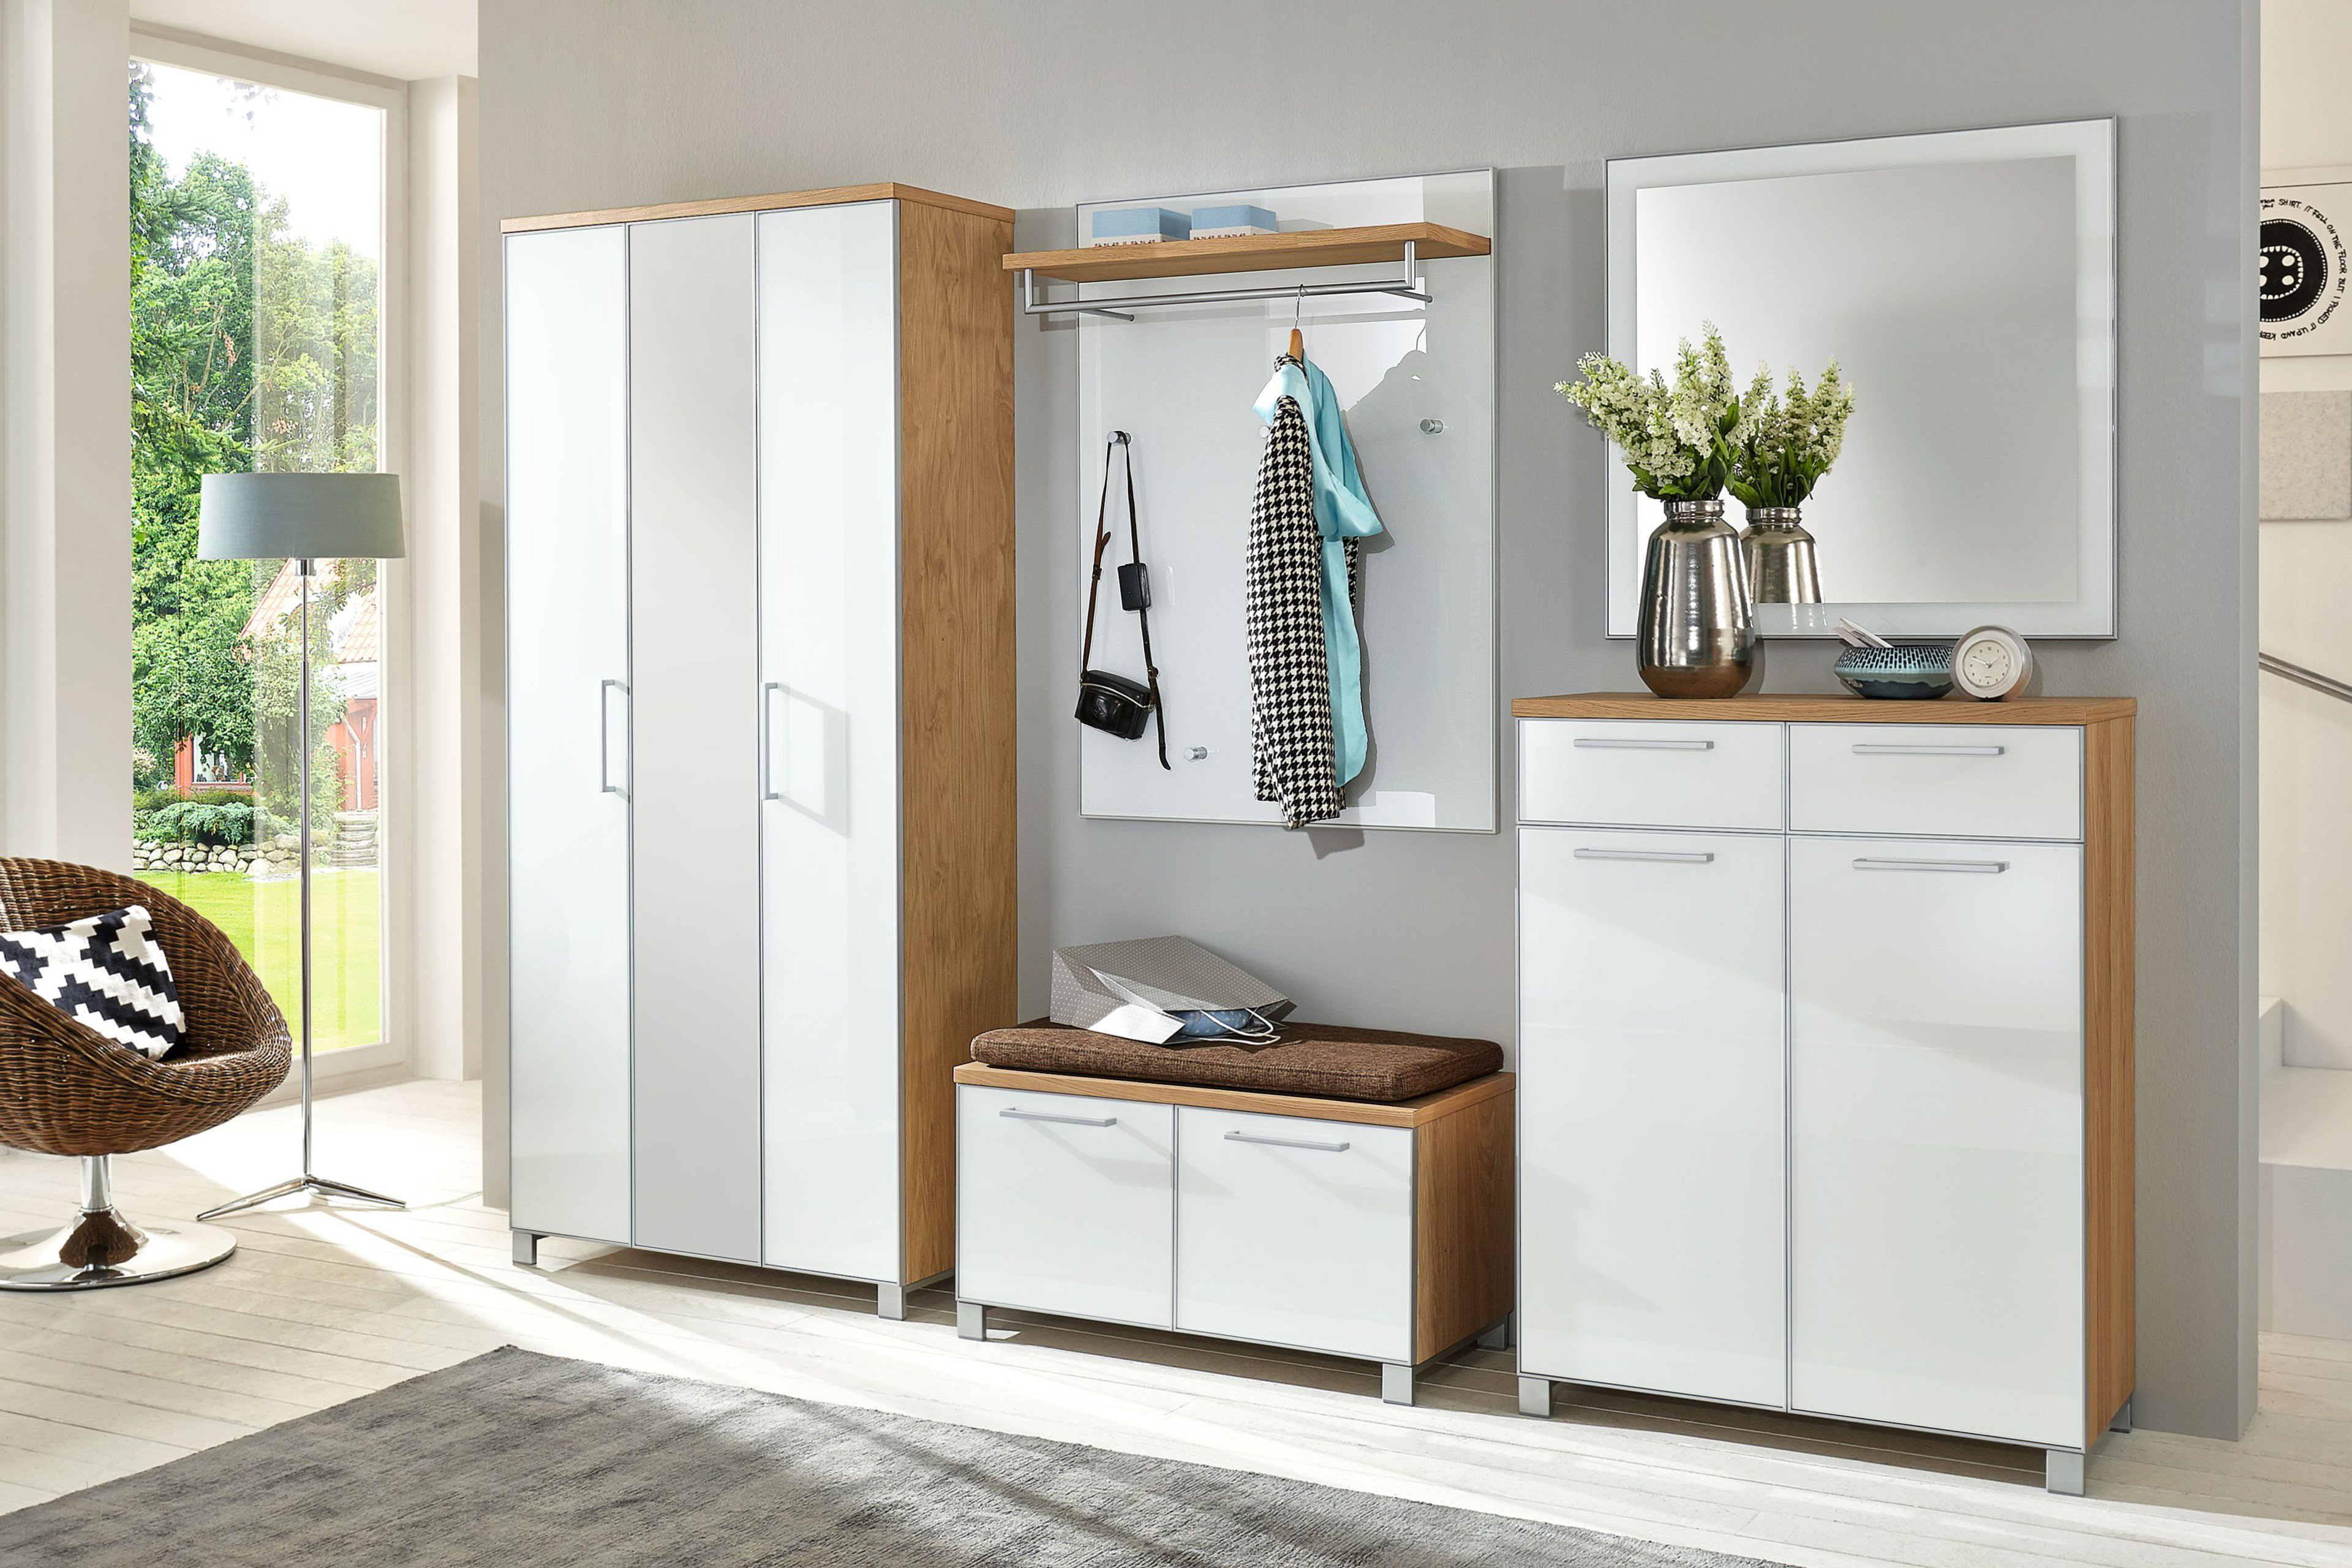 garderobe santina optiwei eiche bianco von voss m bel m bel letz ihr online shop. Black Bedroom Furniture Sets. Home Design Ideas